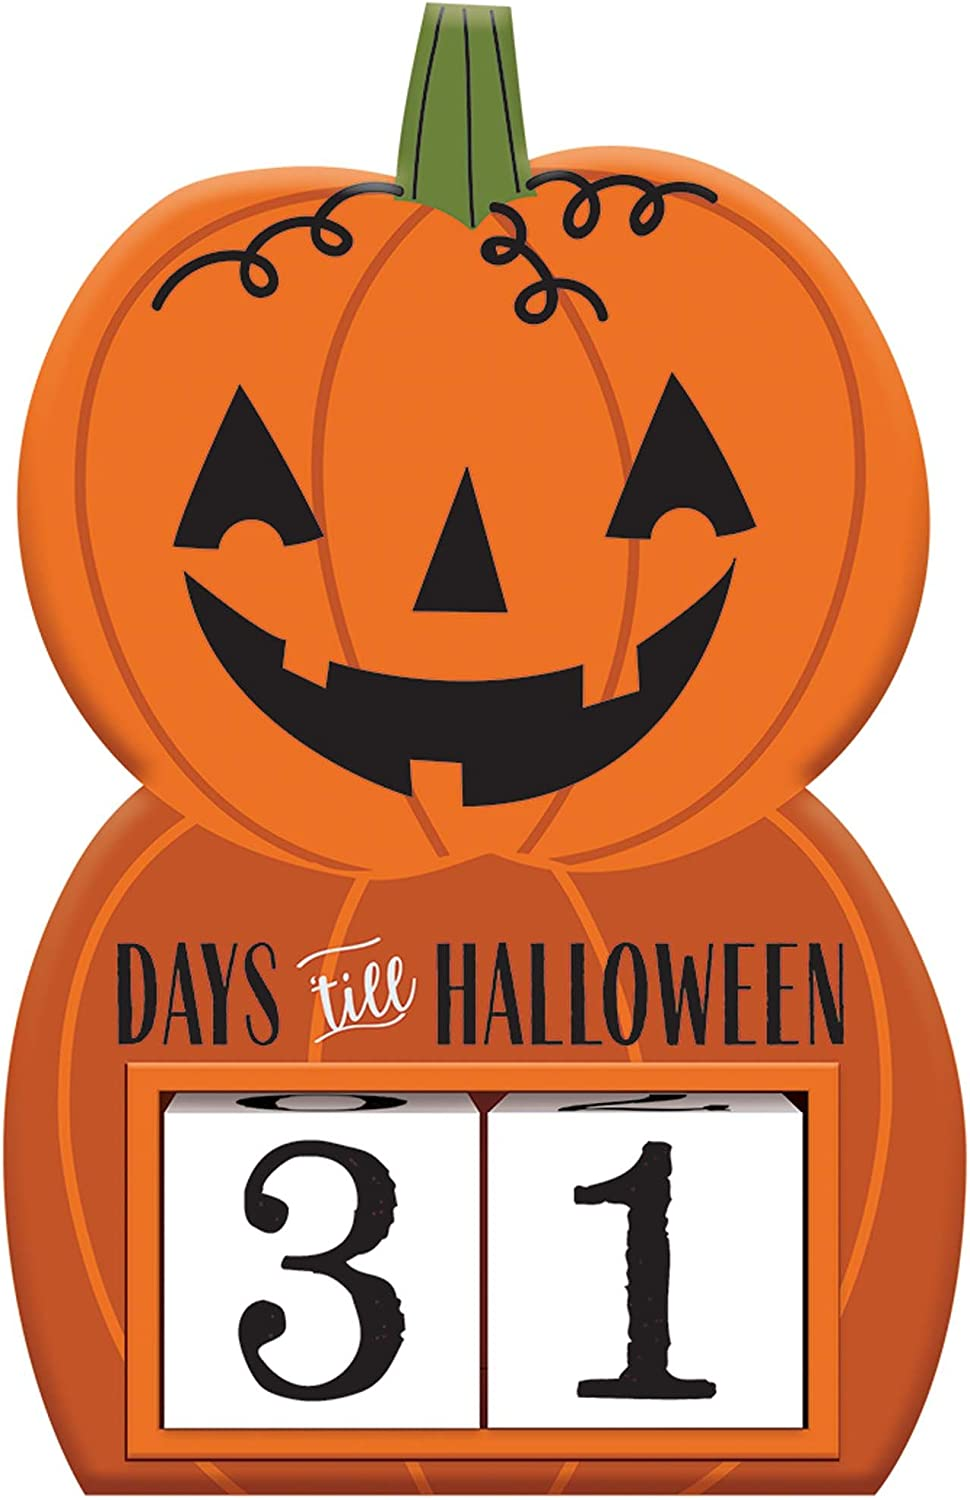 How Many Days Till Halloween 2020 Countdown Amazon.com: Halloween Countdown Sign: Health & Personal Care